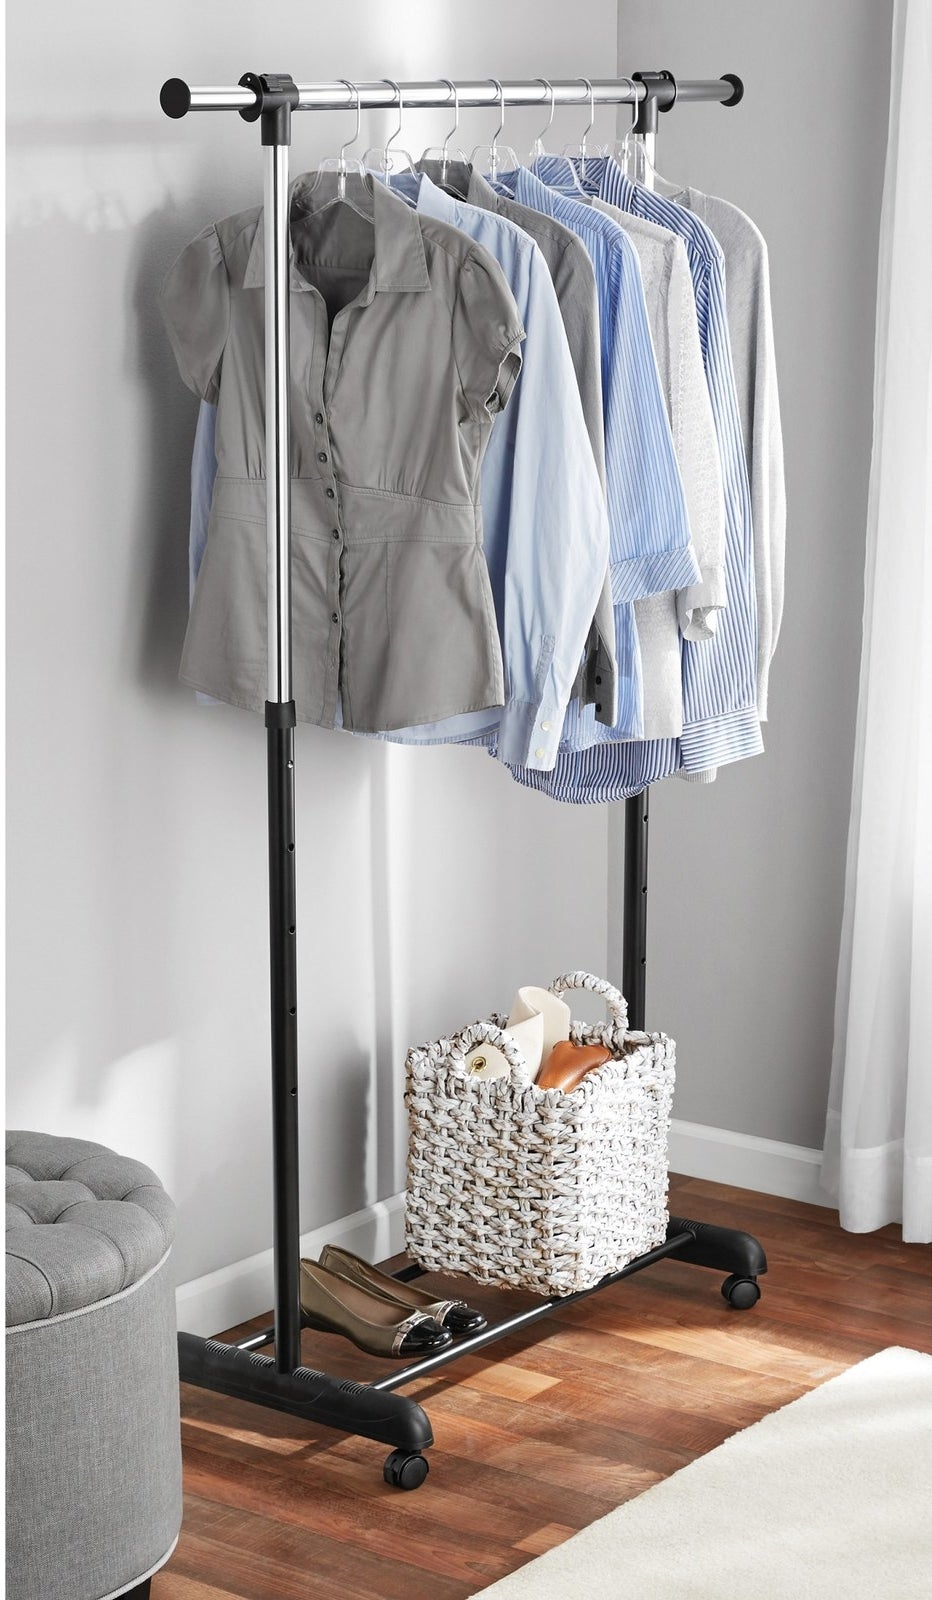 """Promising review: """"These racks are perfect for a studio apartment. If you are worried about your clothes being heavy, DON'T WORRY. I bought two and connected them together and they are AMAZING!! I have 27 sweatshirts/jackets, 73 t-shirts, and 12 sweaters/dresses. I also have purses and belts hanging on the ends. The bar at the top is completely straight even with all the weight. They were also very easy to put together. Its also very helpful that they can be shorter and taller, perfect for someone with a slanted ceiling."""" —RachadlPrice: $12.21"""